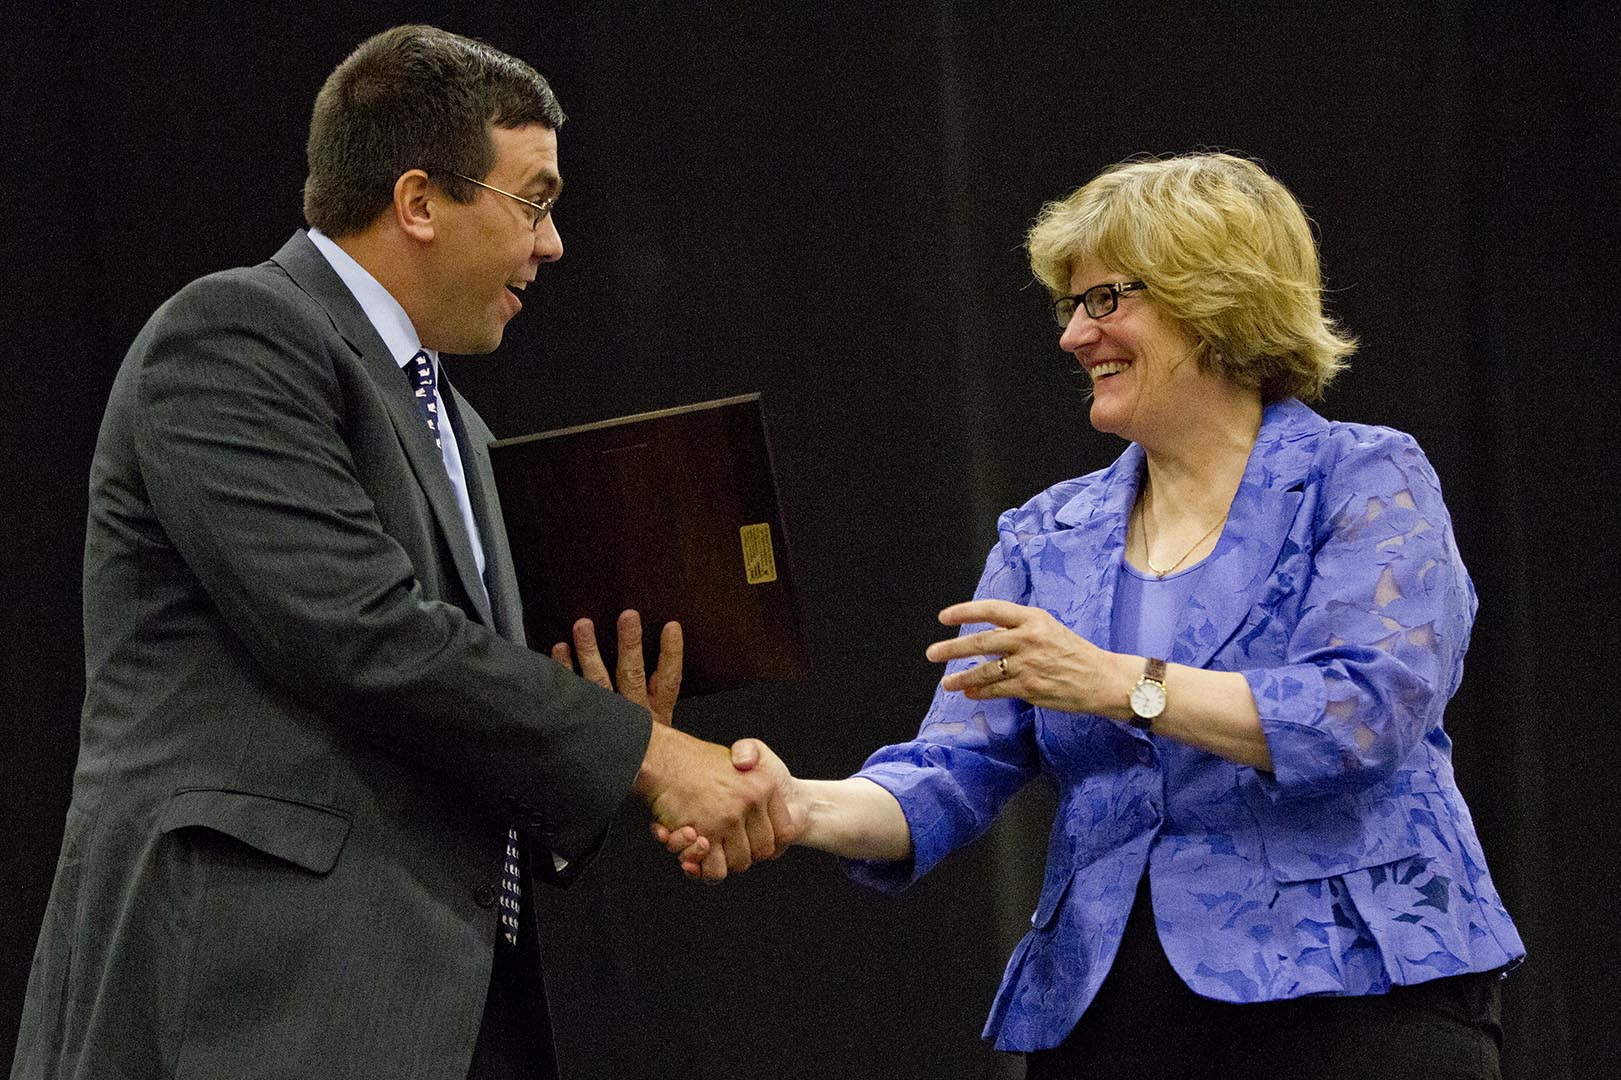 Brad Adams '92 is congratulated by President Clayton Spencer as he receives the Stangle Award for Distinguished Service to the Bates Community on June 8, 2013, at Reunion. Photograph by Phyllis Graber Jensen/Bates College.